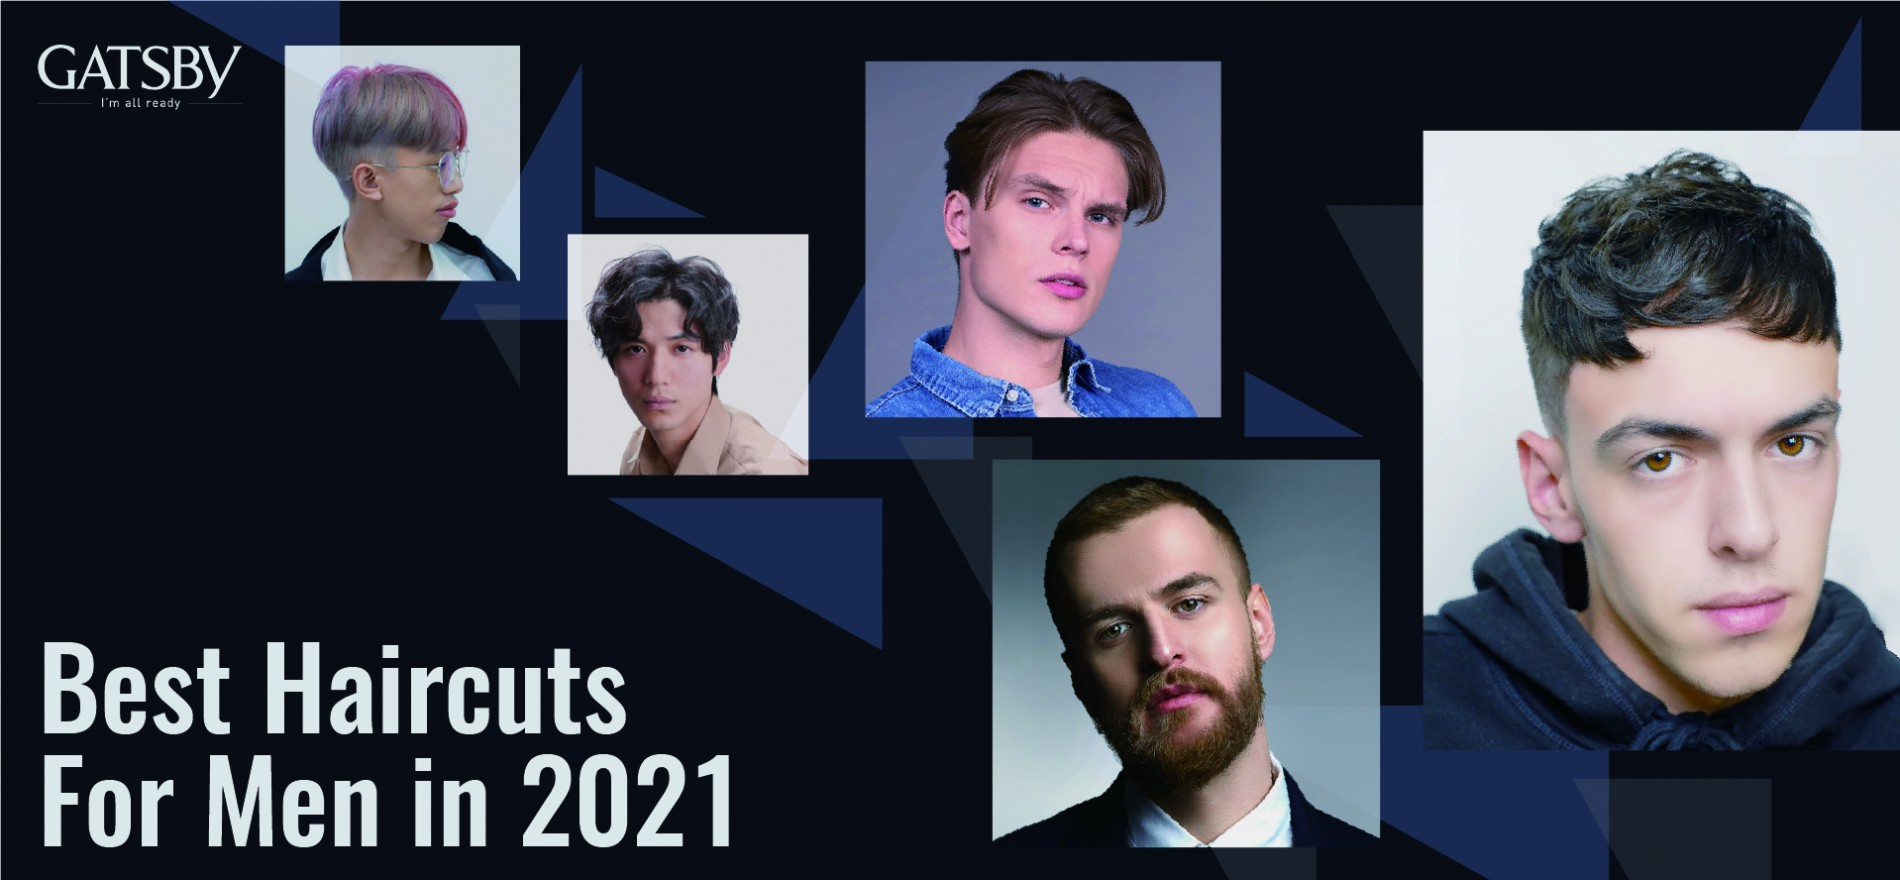 upload/assets/Best Haircuts for Men in 2021.jpg